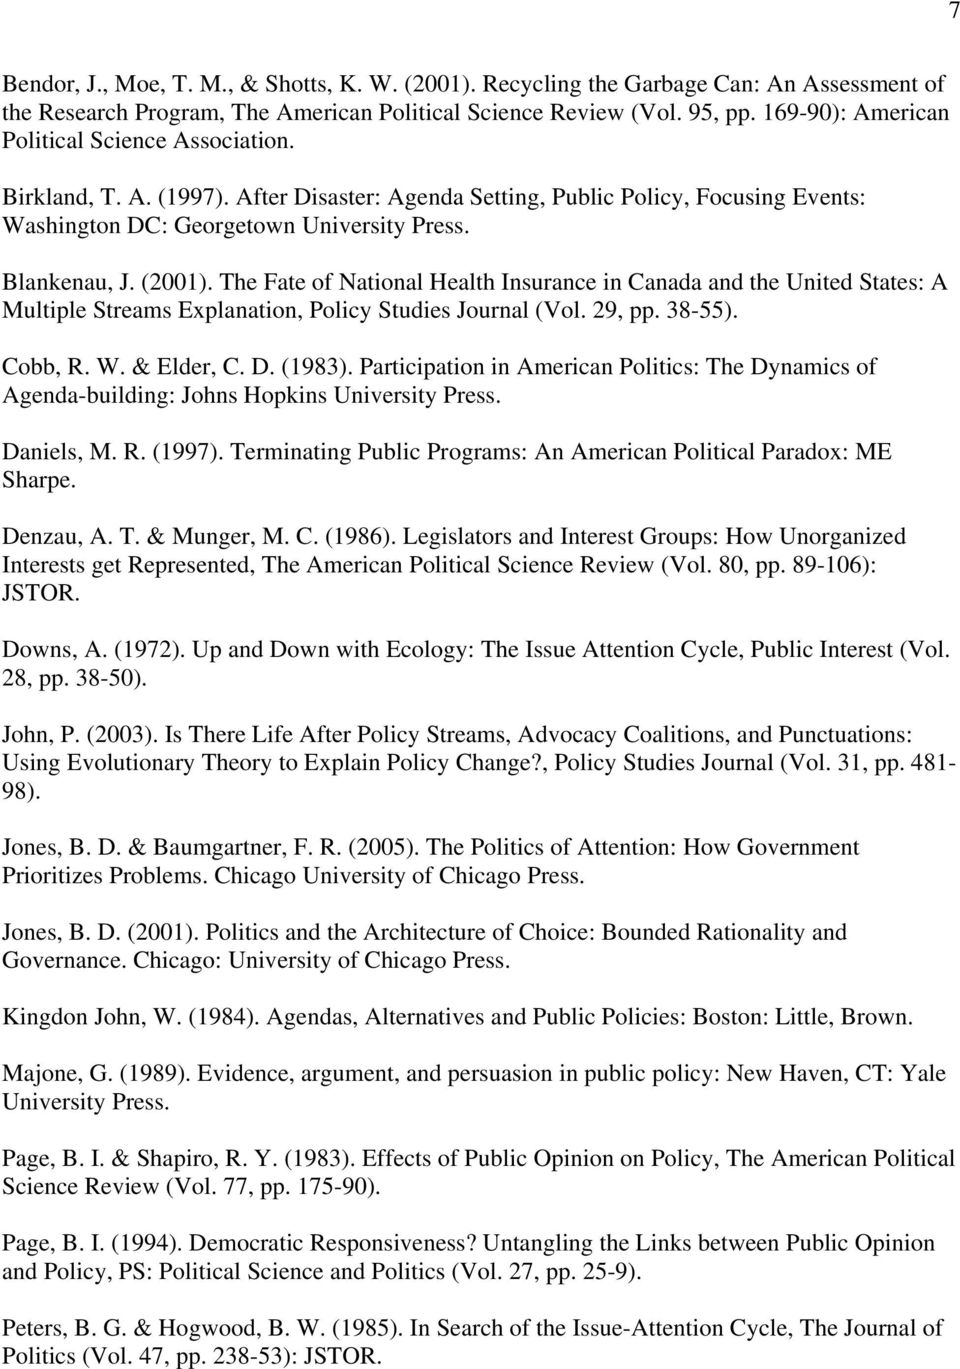 (2001). The Fate of National Health Insurance in Canada and the United States: A Multiple Streams Explanation, Policy Studies Journal (Vol. 29, pp. 38-55). Cobb, R. W. & Elder, C. D. (1983).